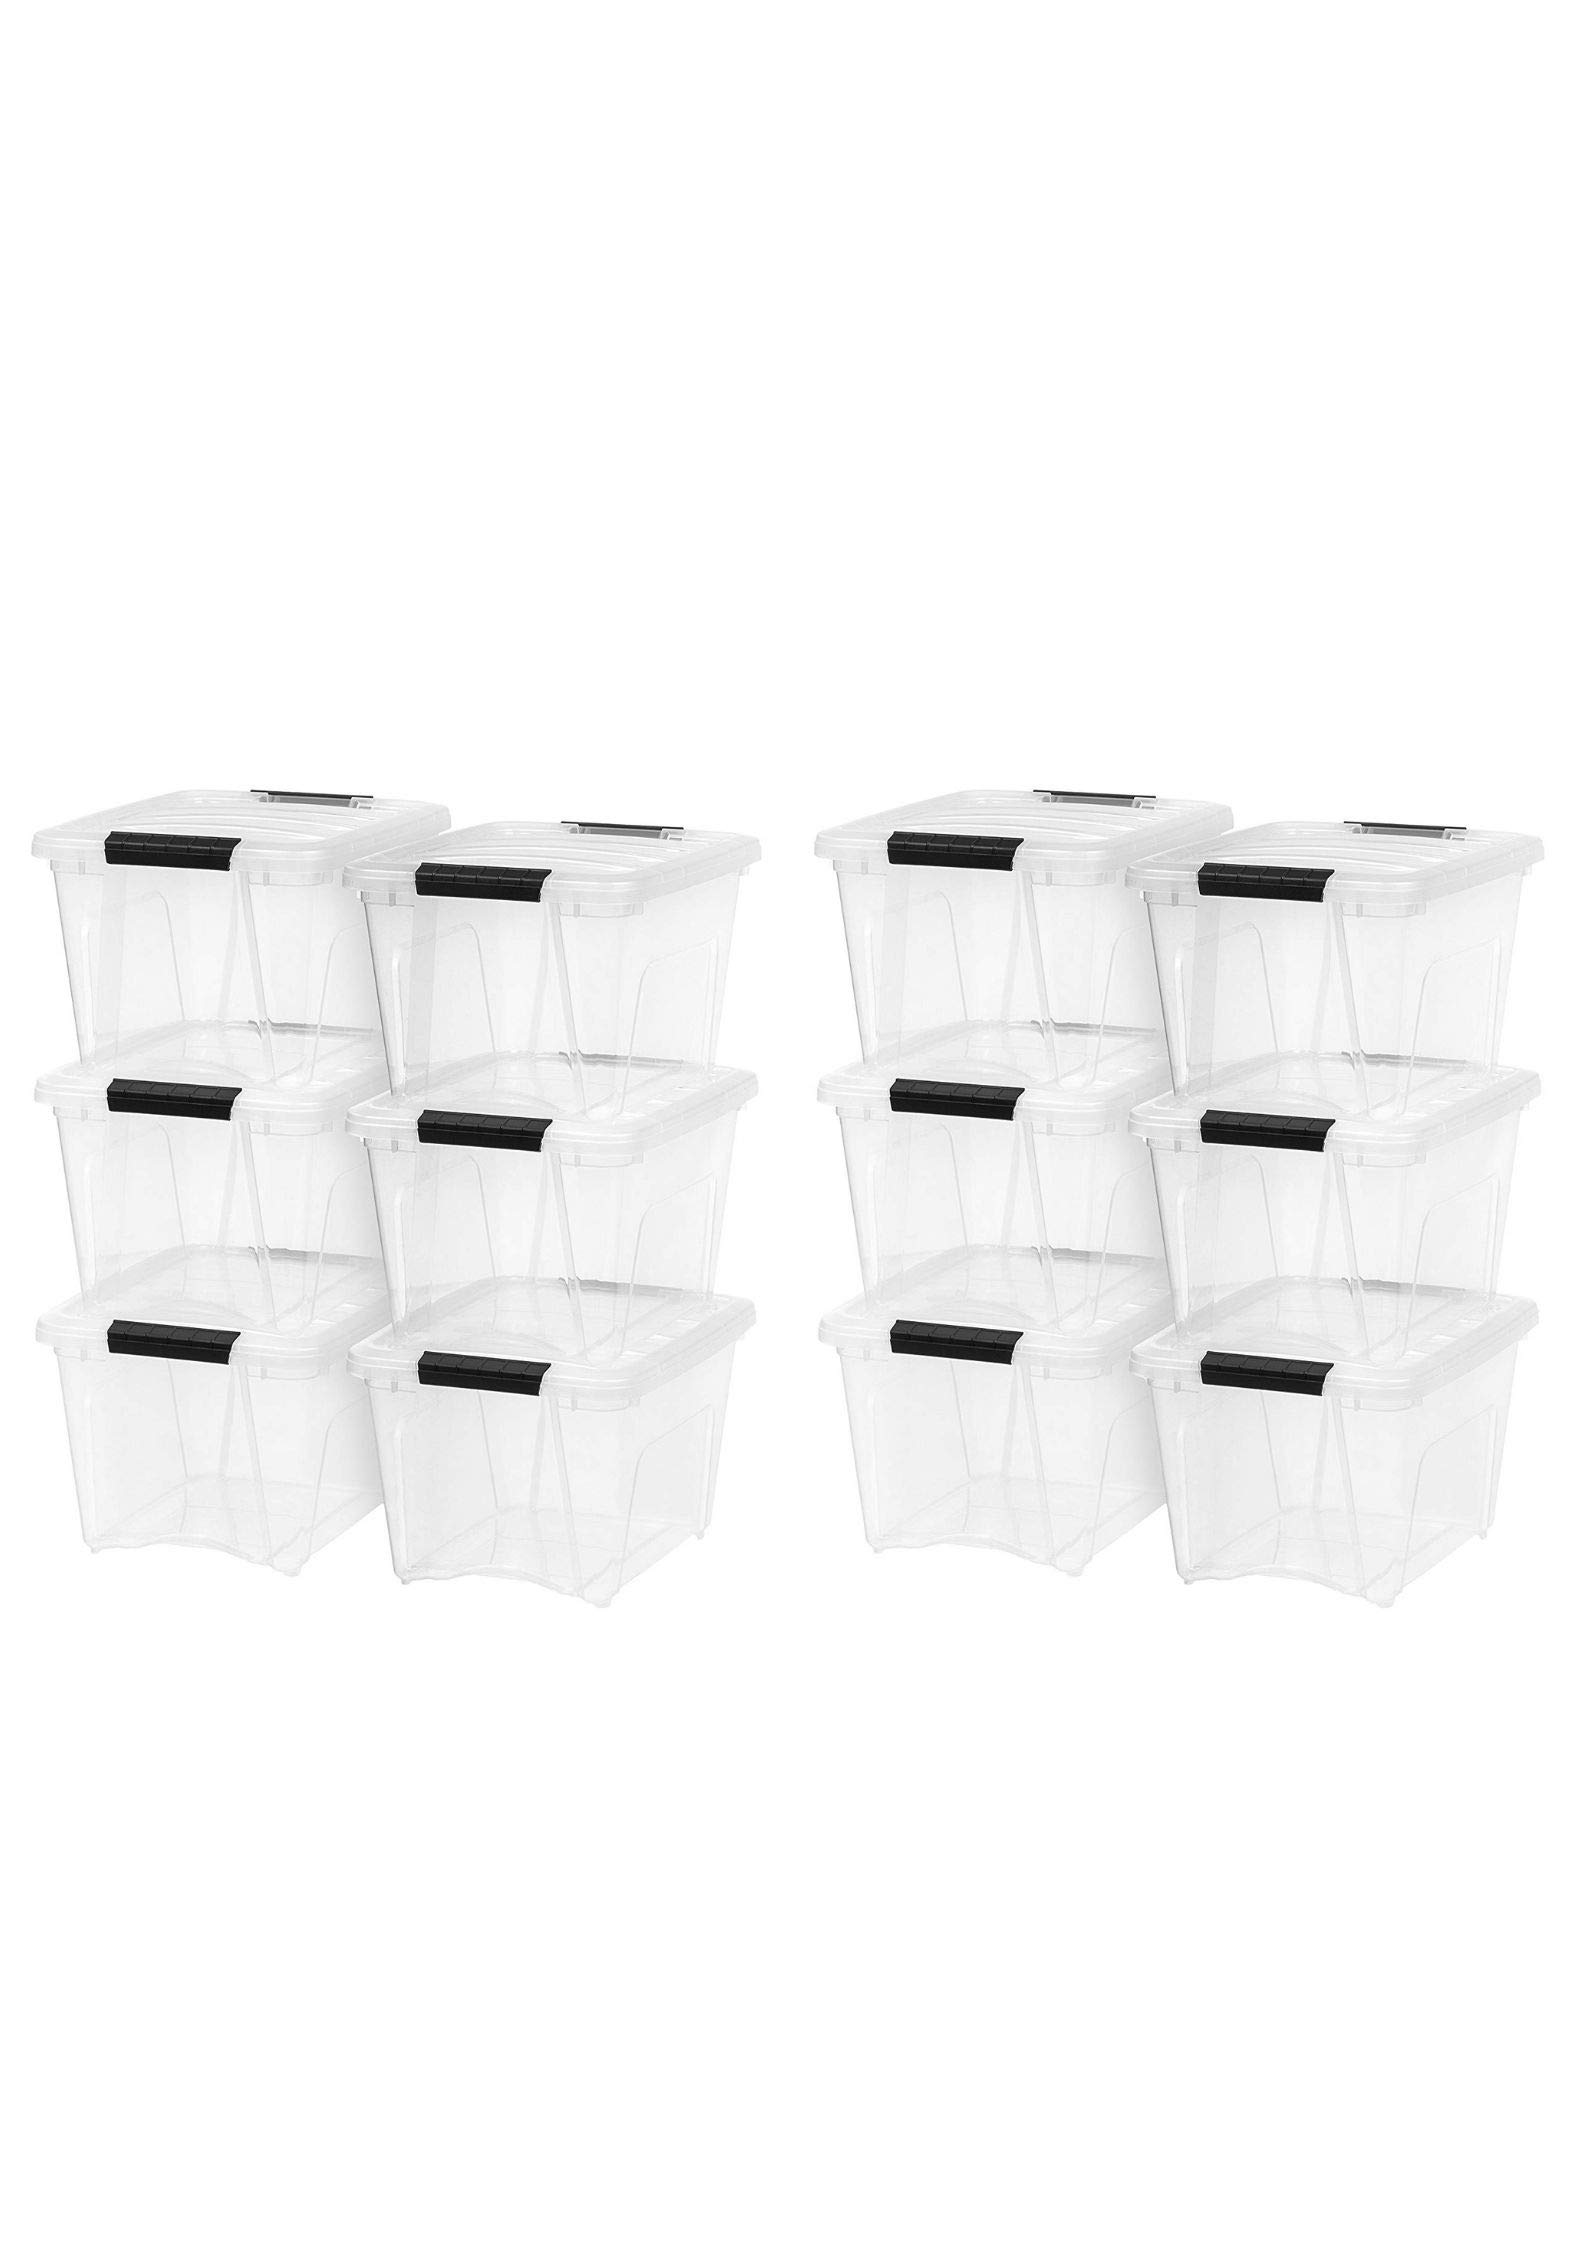 IRIS 19 Quart Stack & Pull Box, 6 Pack, Clear with Black Handles (12 Pack,19 Quart)